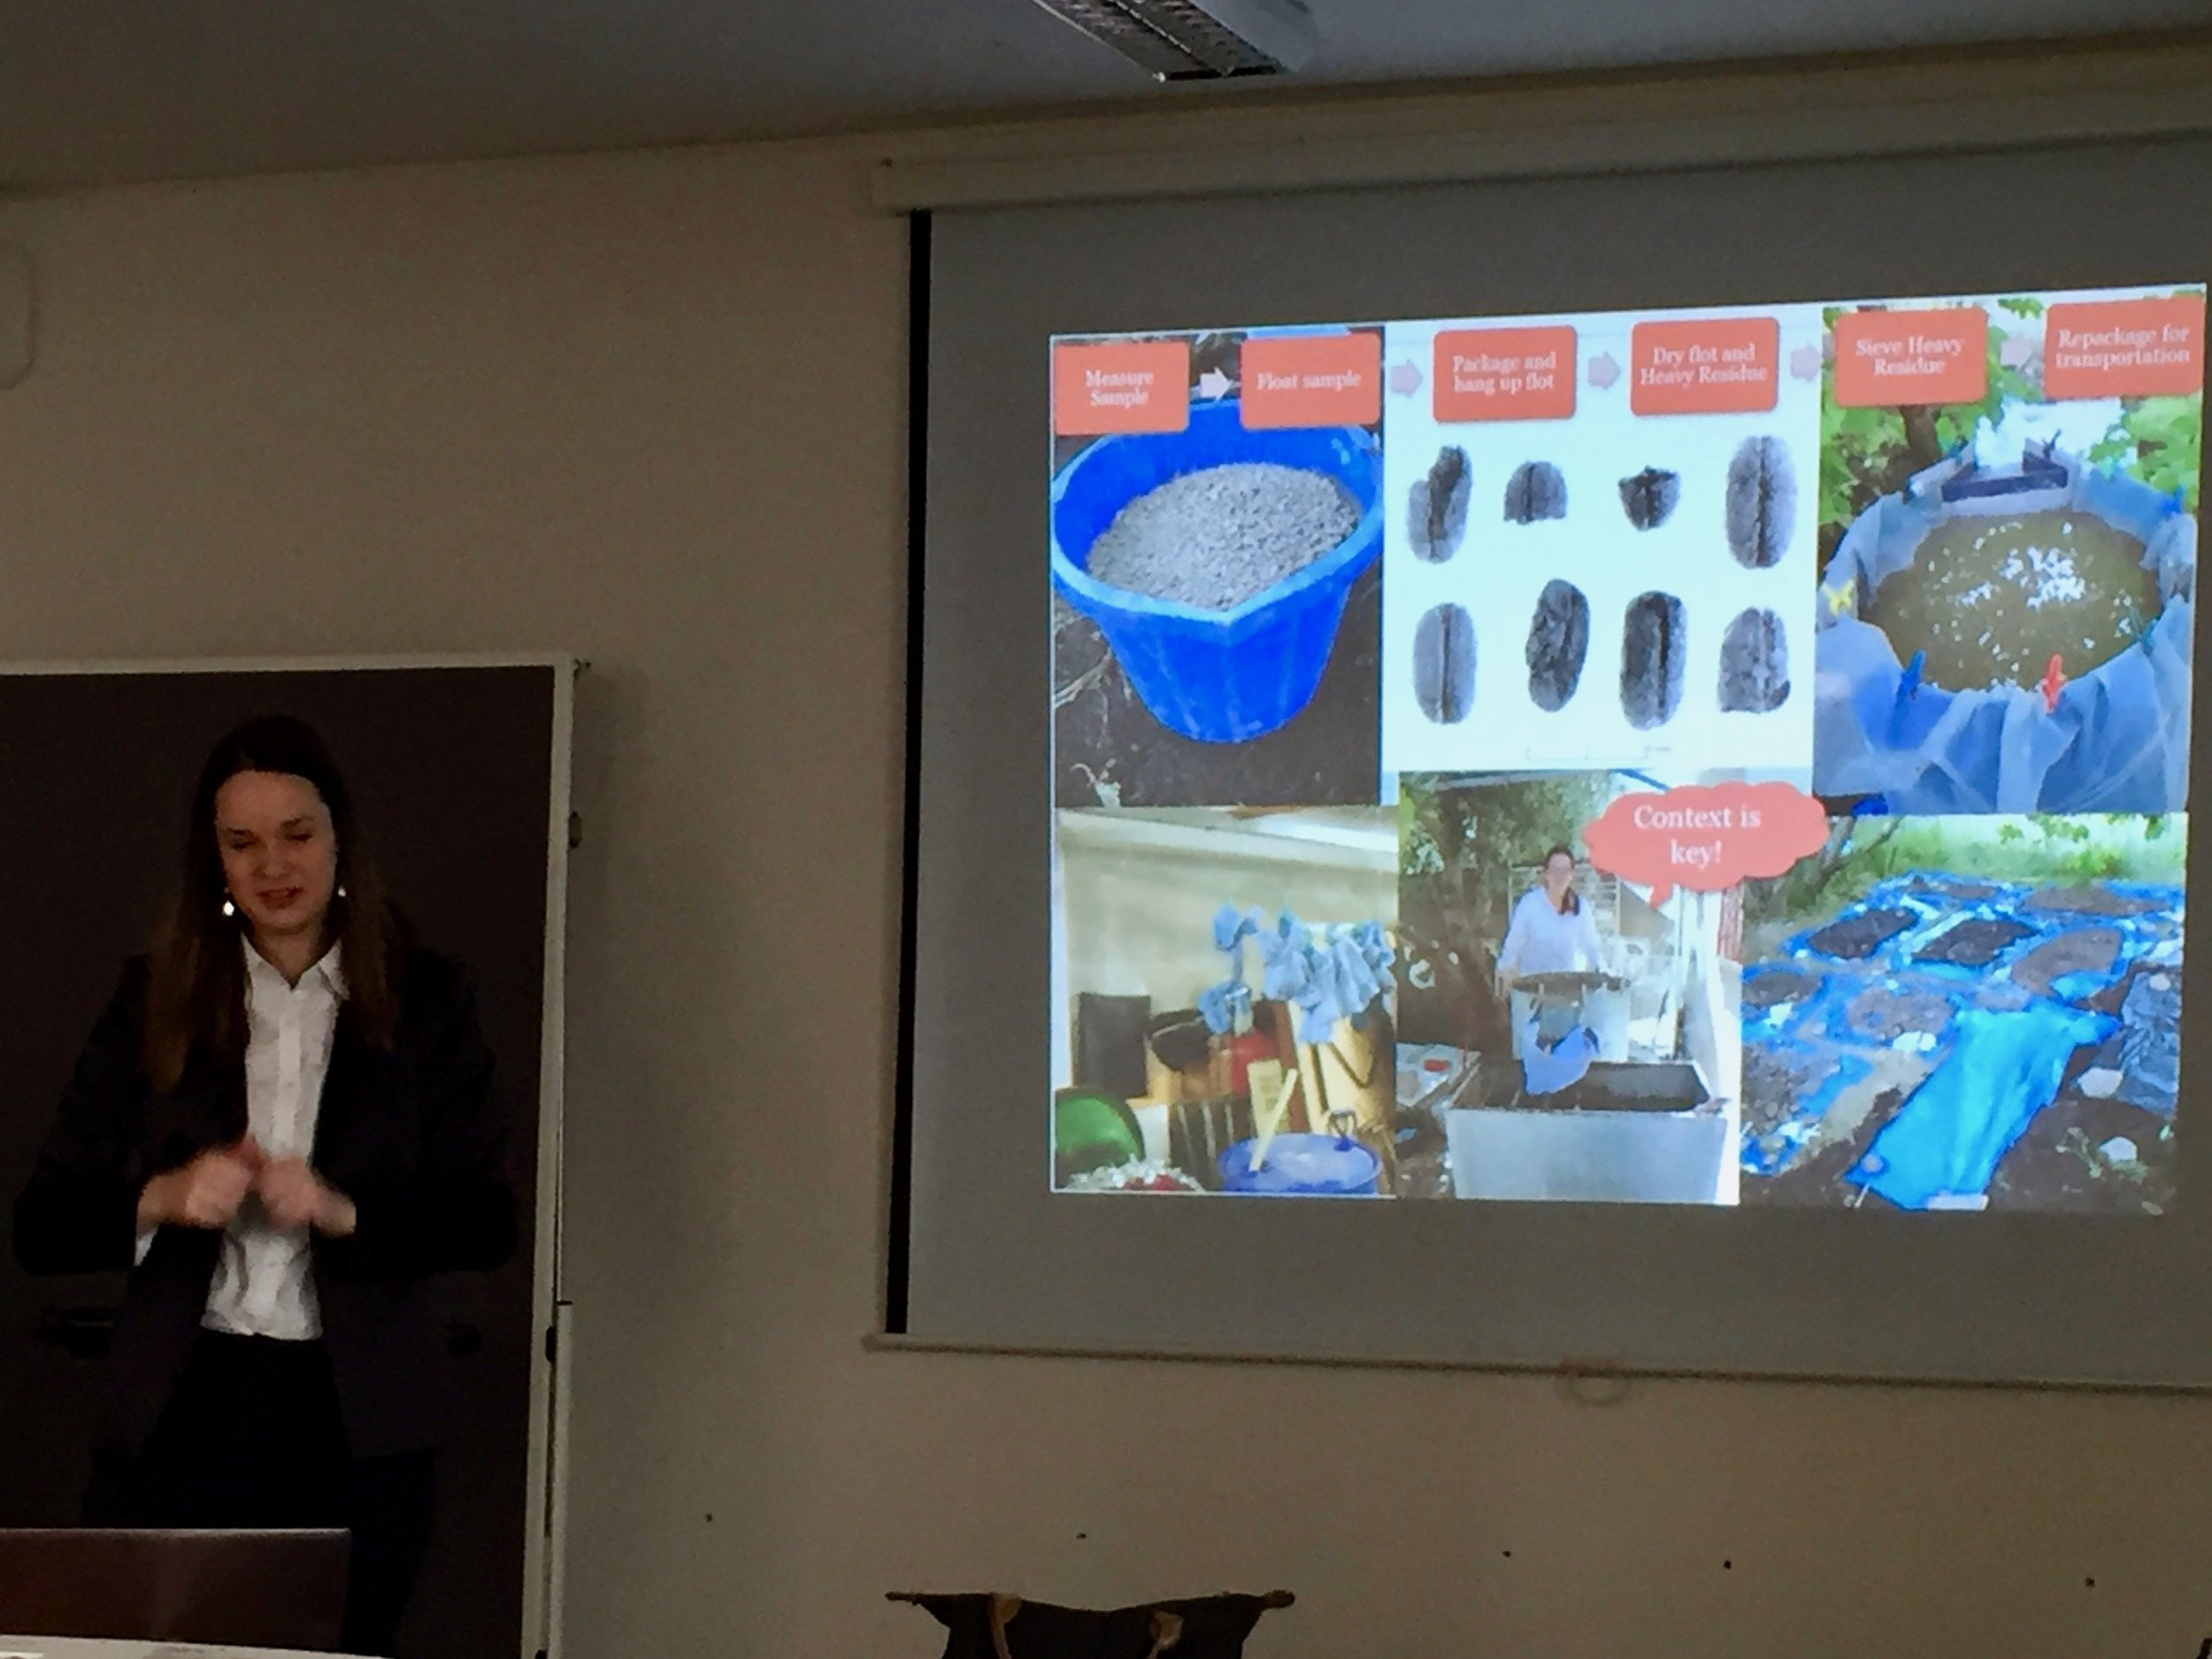 Annette Hansen discussing the process of sorting plant remains at an archeological site.